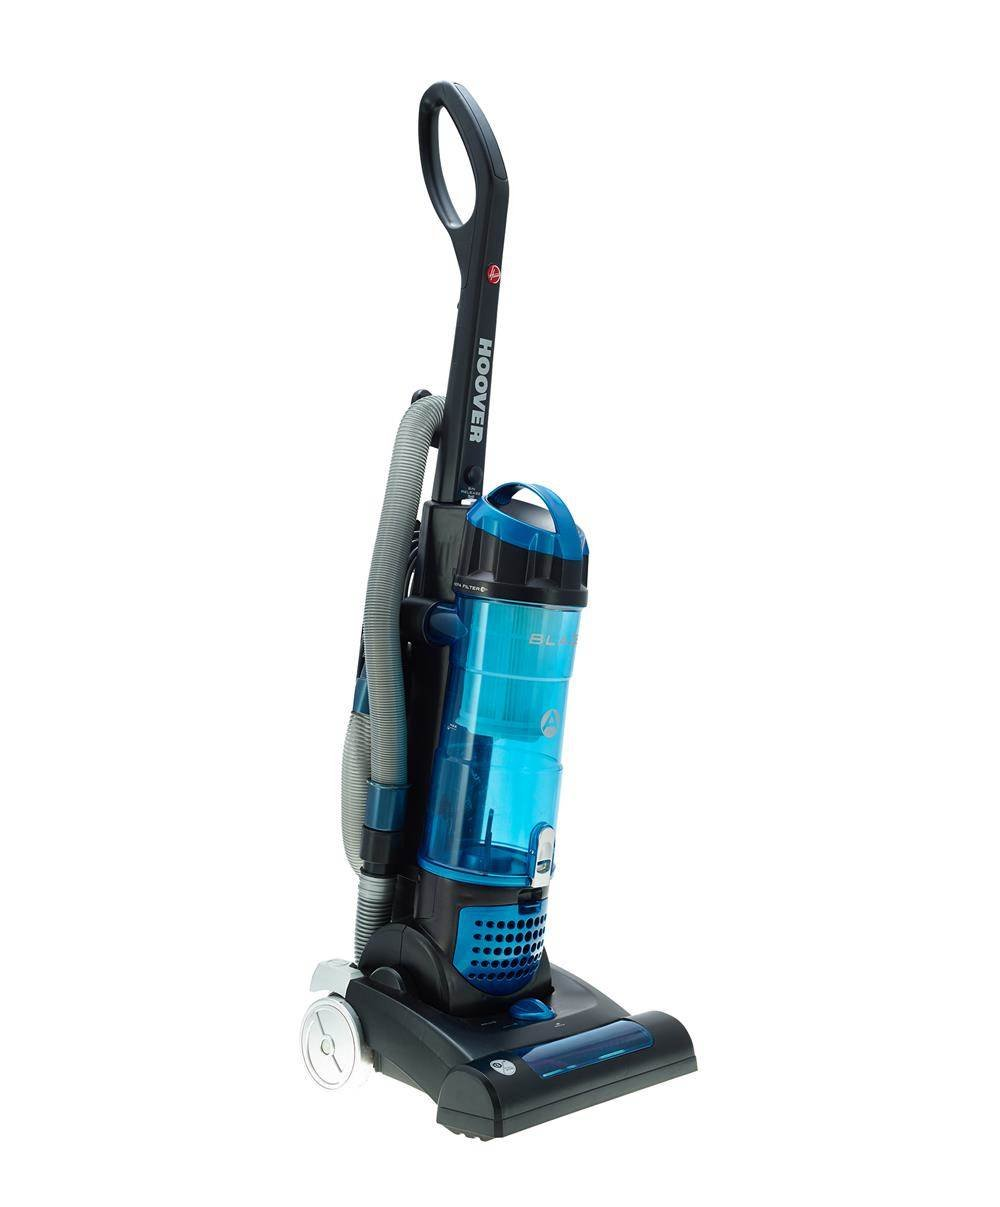 Electrolux cordless vacuum cleaners: a dozen of the best Swedish brand models shopping tips 46